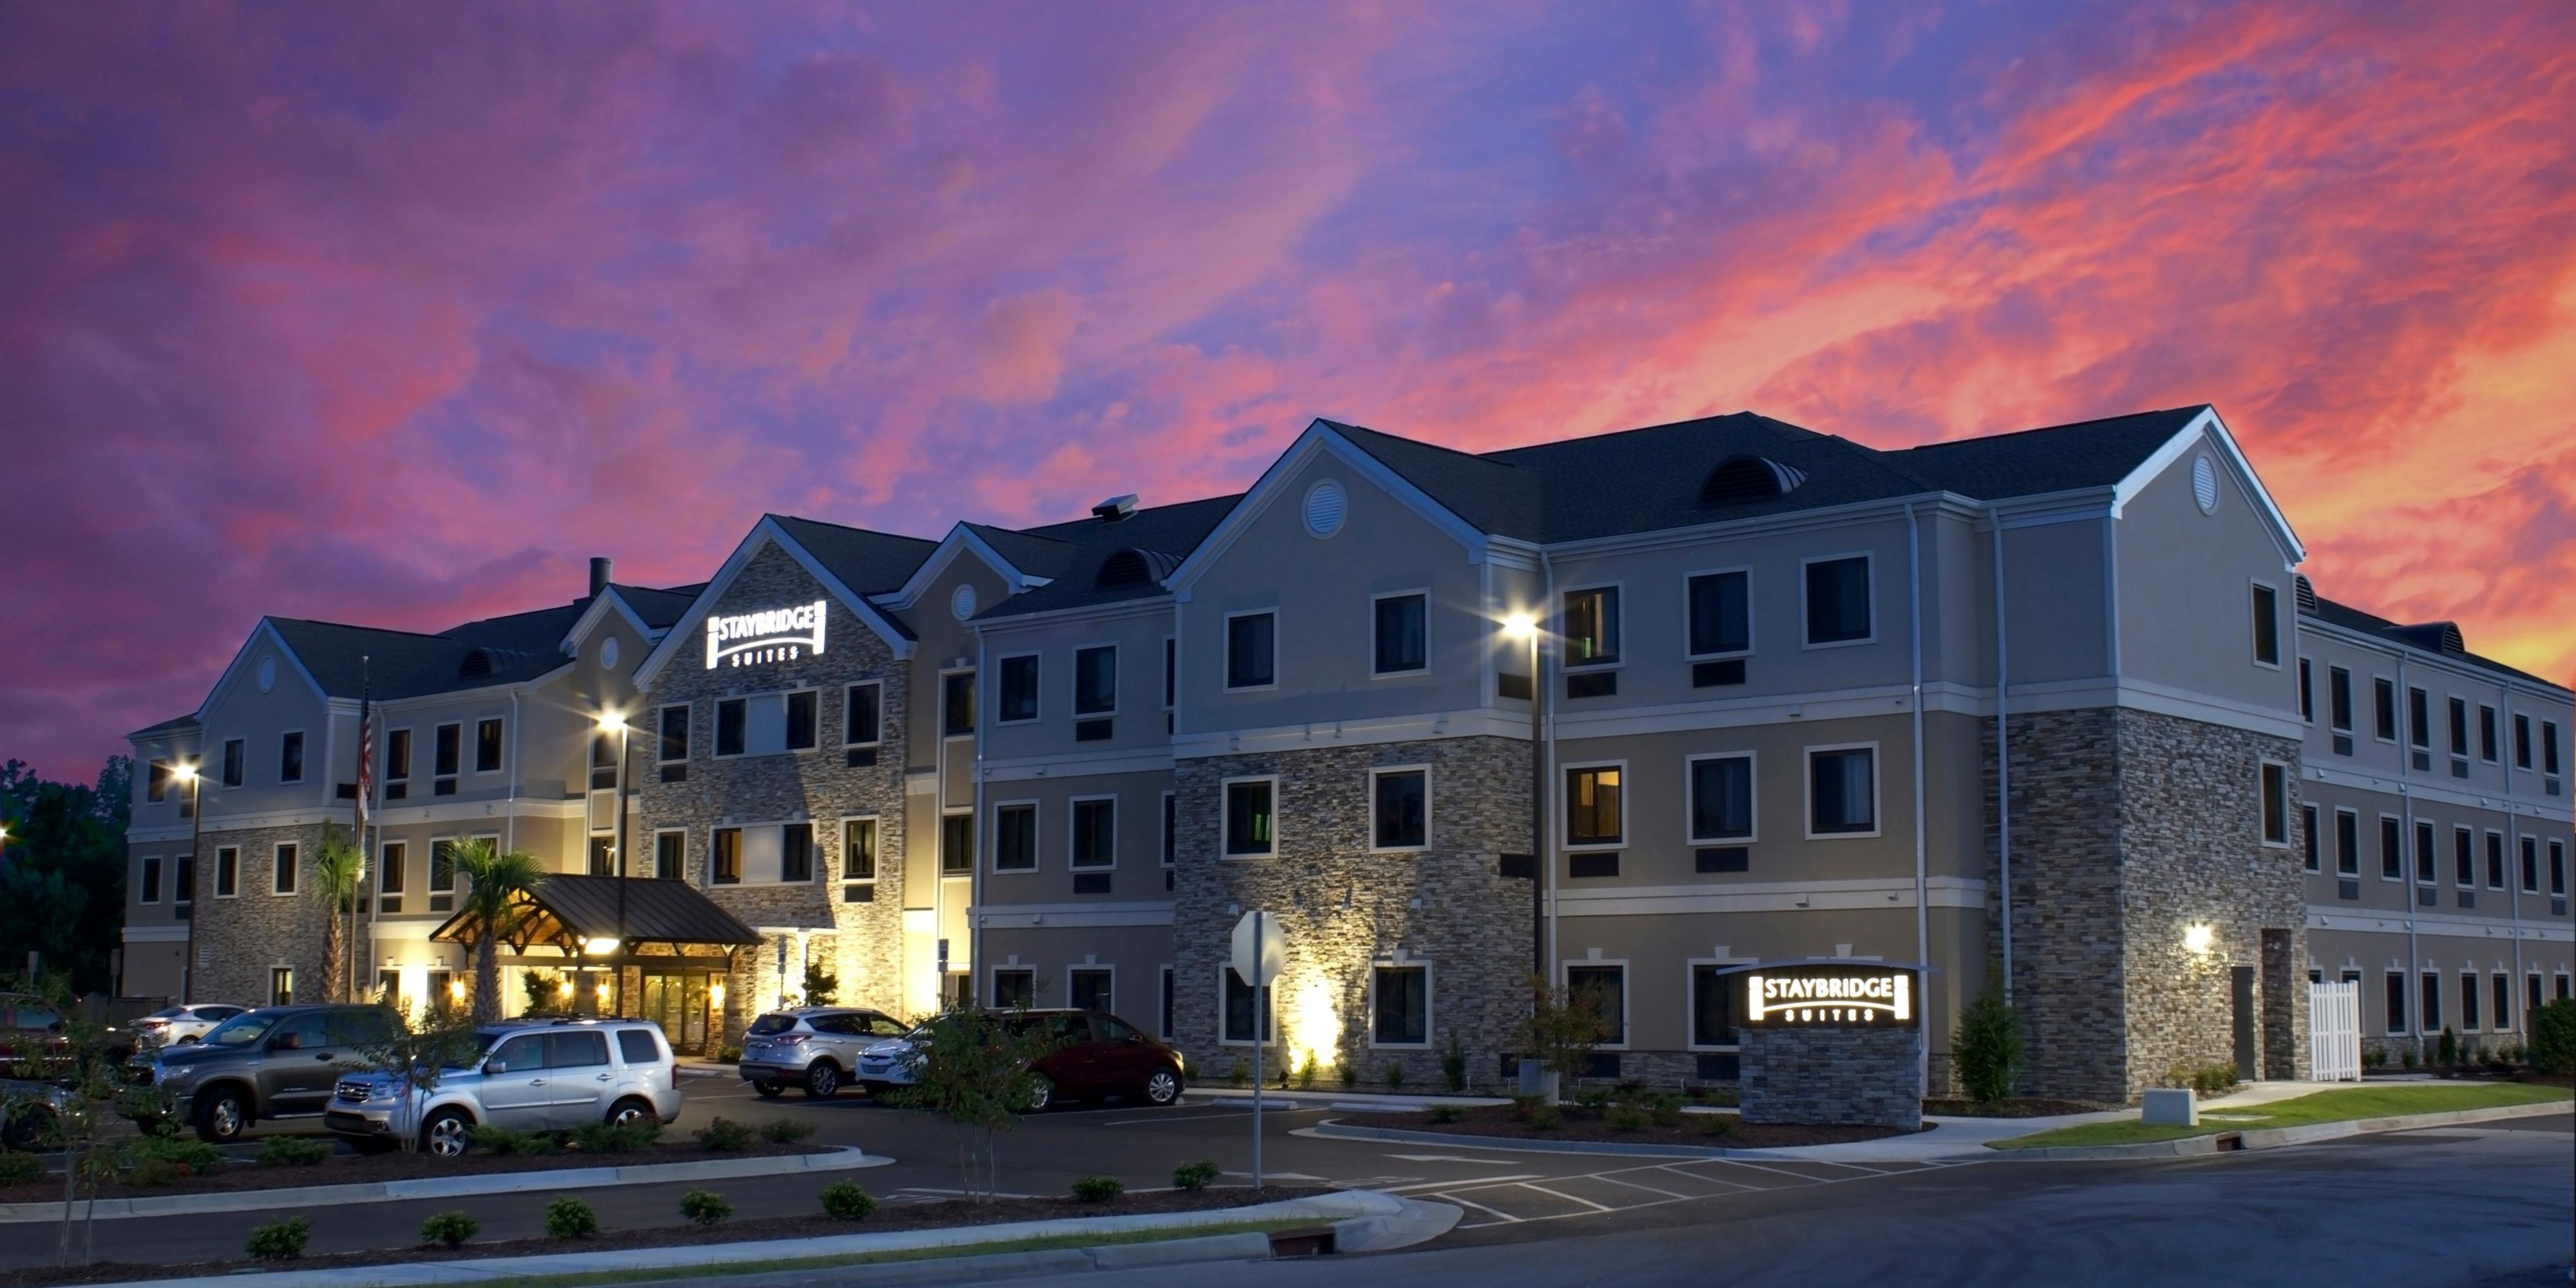 Welcome To The Staybridge Suites North Jacksonville Hotel